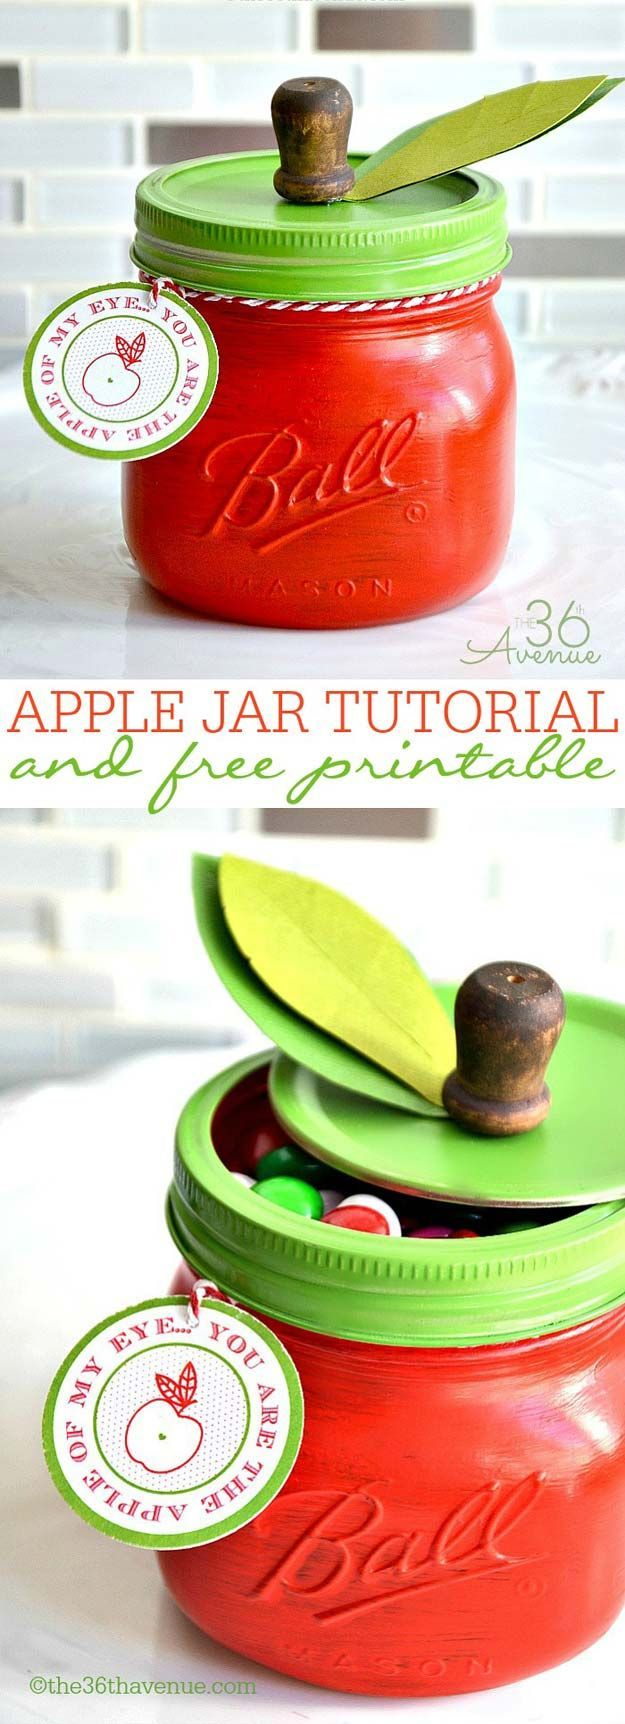 Cute DIY Mason Jar Gift Ideas for Teens - DIY Apple Jar - Best Christmas Presents, Birthday Gifts and Cool Room Decor Ideas for Girls and Boy Teenagers - Fun Crafts and DIY Projects for Snow Globes, Dollar Store Crafts and Valentines for Kids